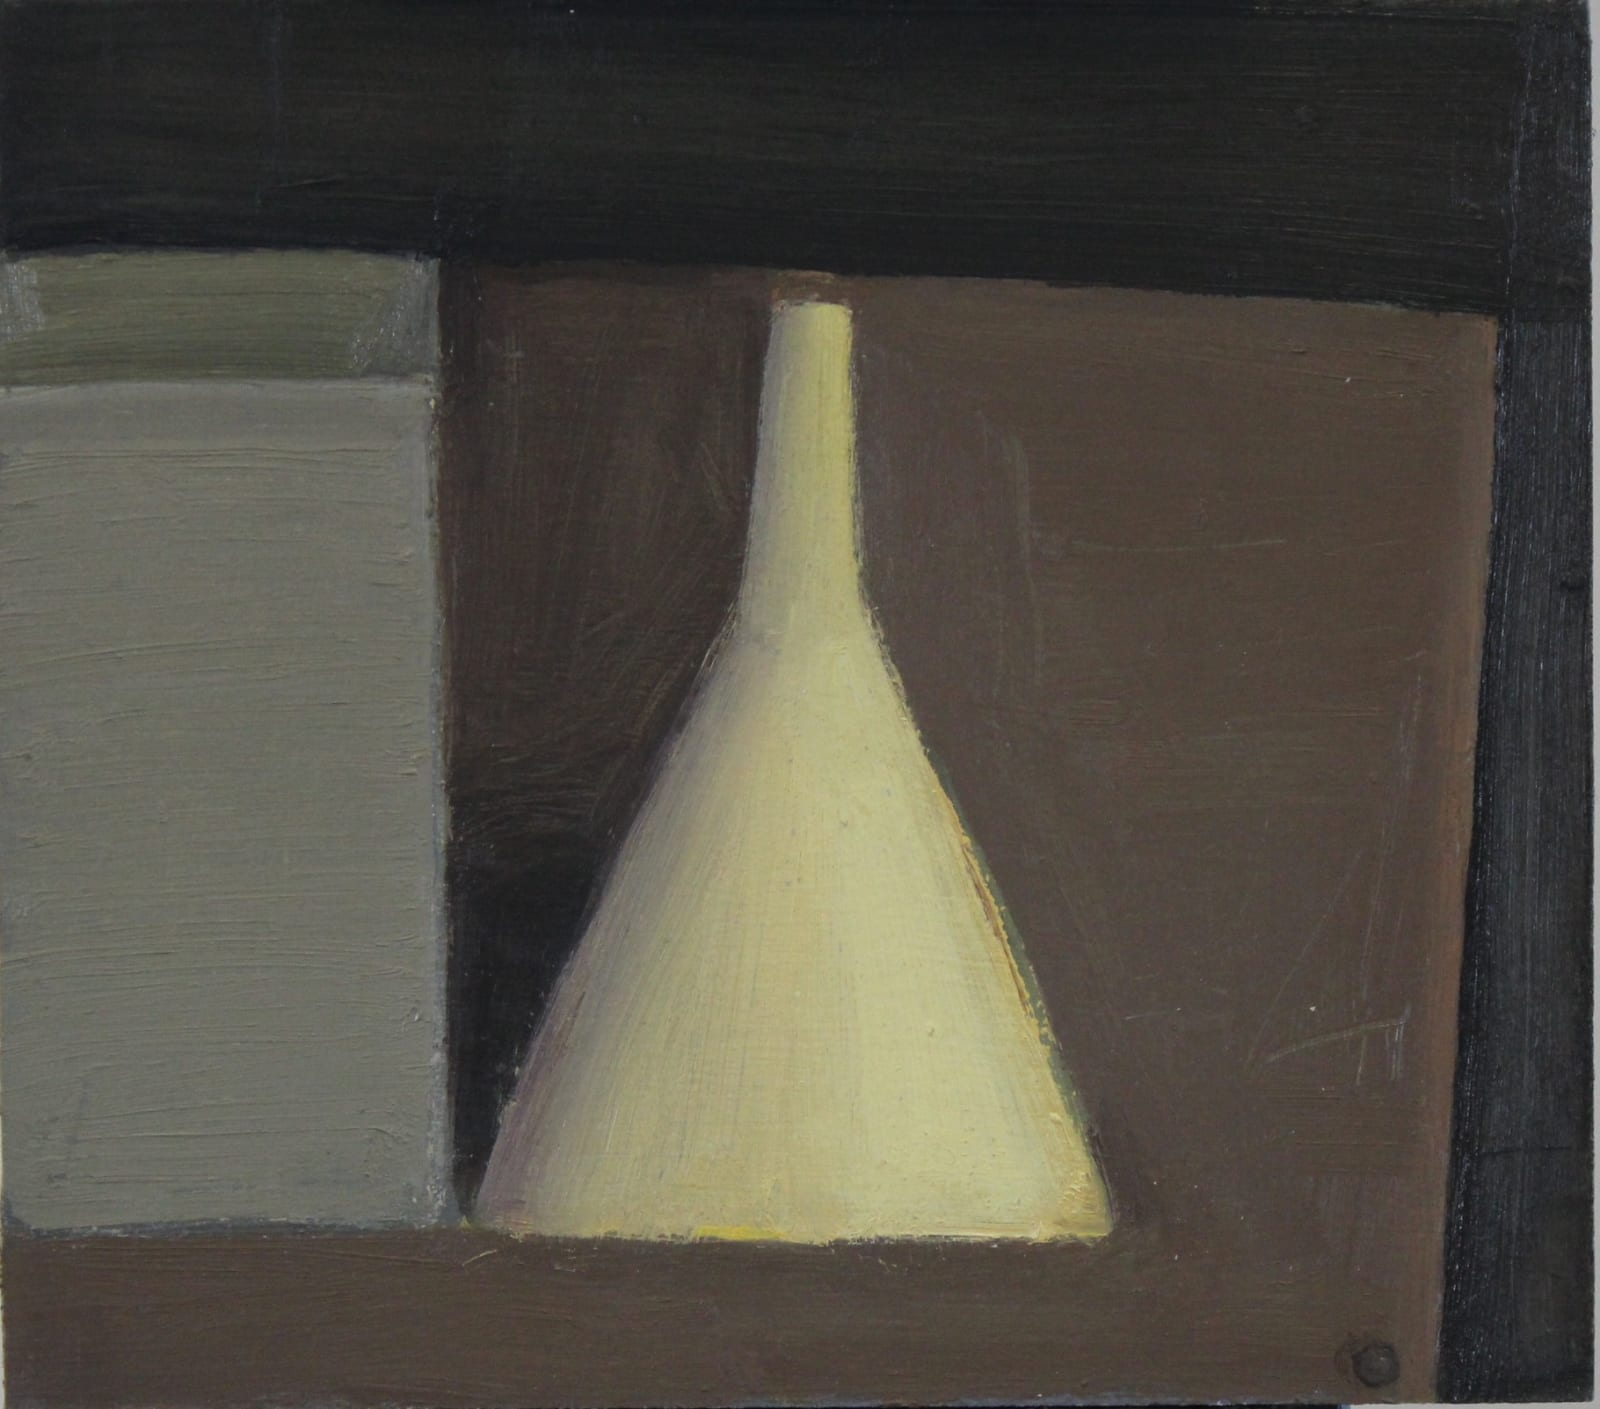 Brian Sayers, Box and Funnel, 2020